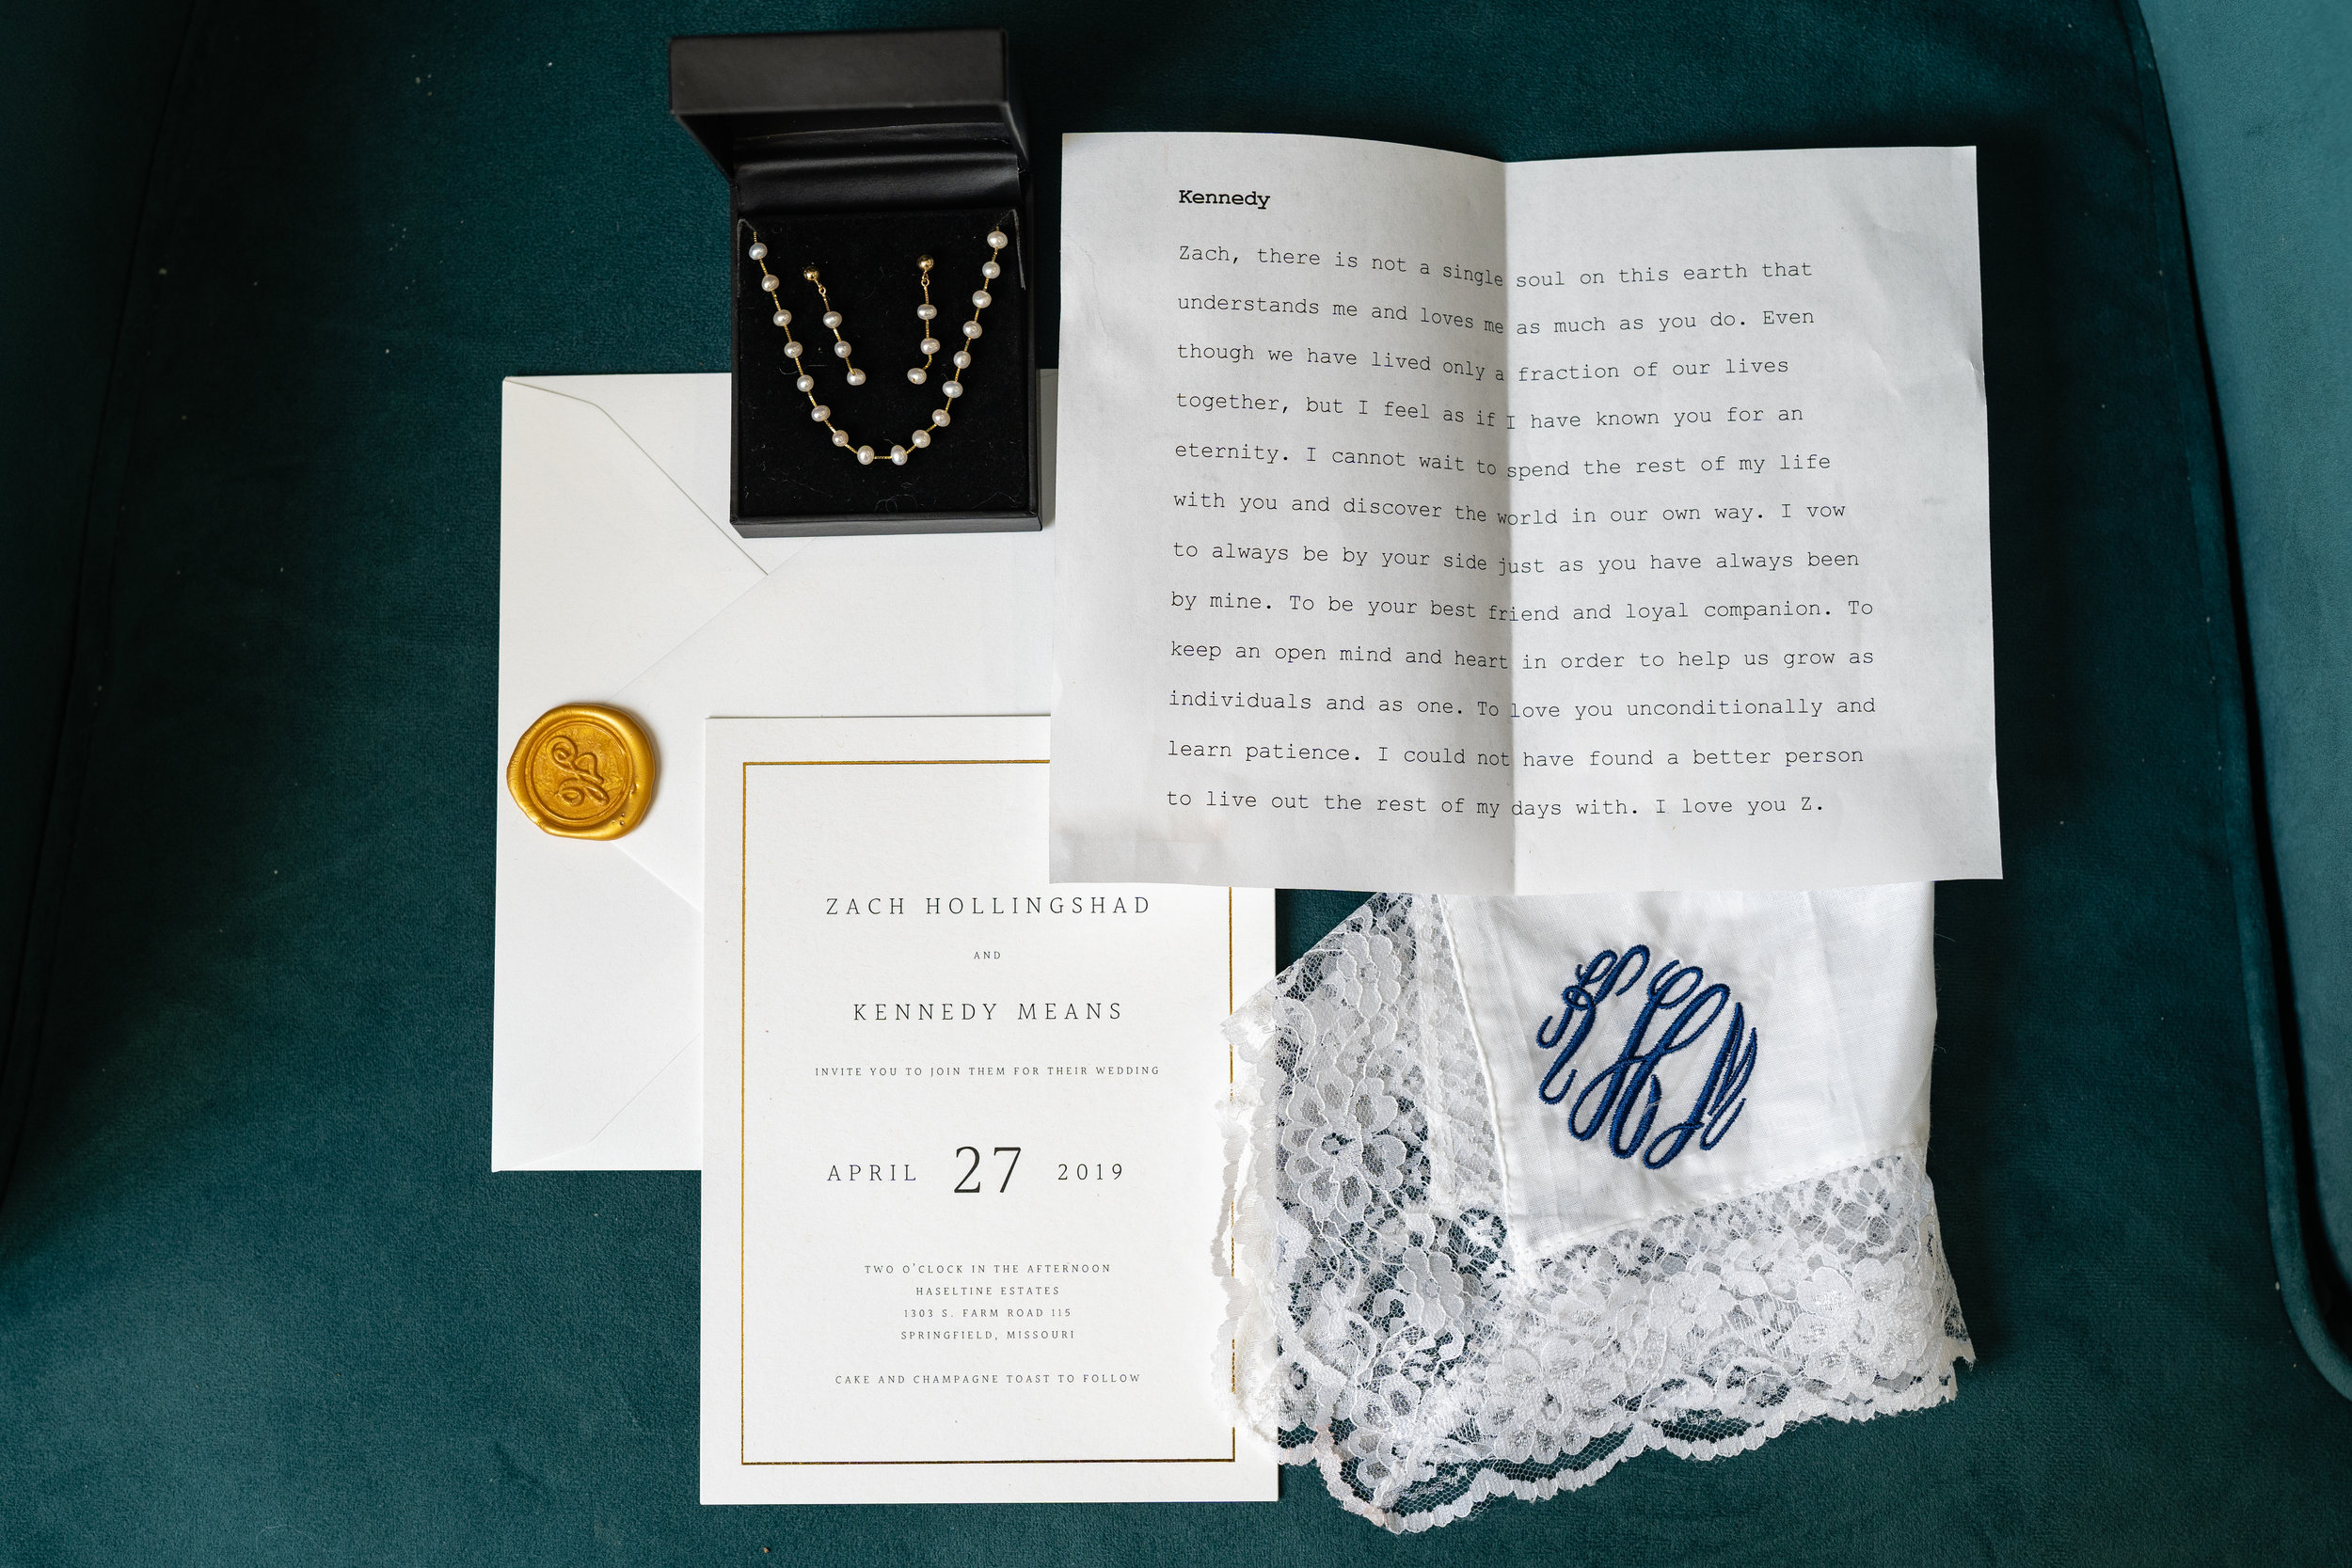 Intimate details for the vintage inspired couple on their wedding day are styled by their caring wedding planner, including the bride's vows printed on a typewriter. The intimate details matter on your wedding day.